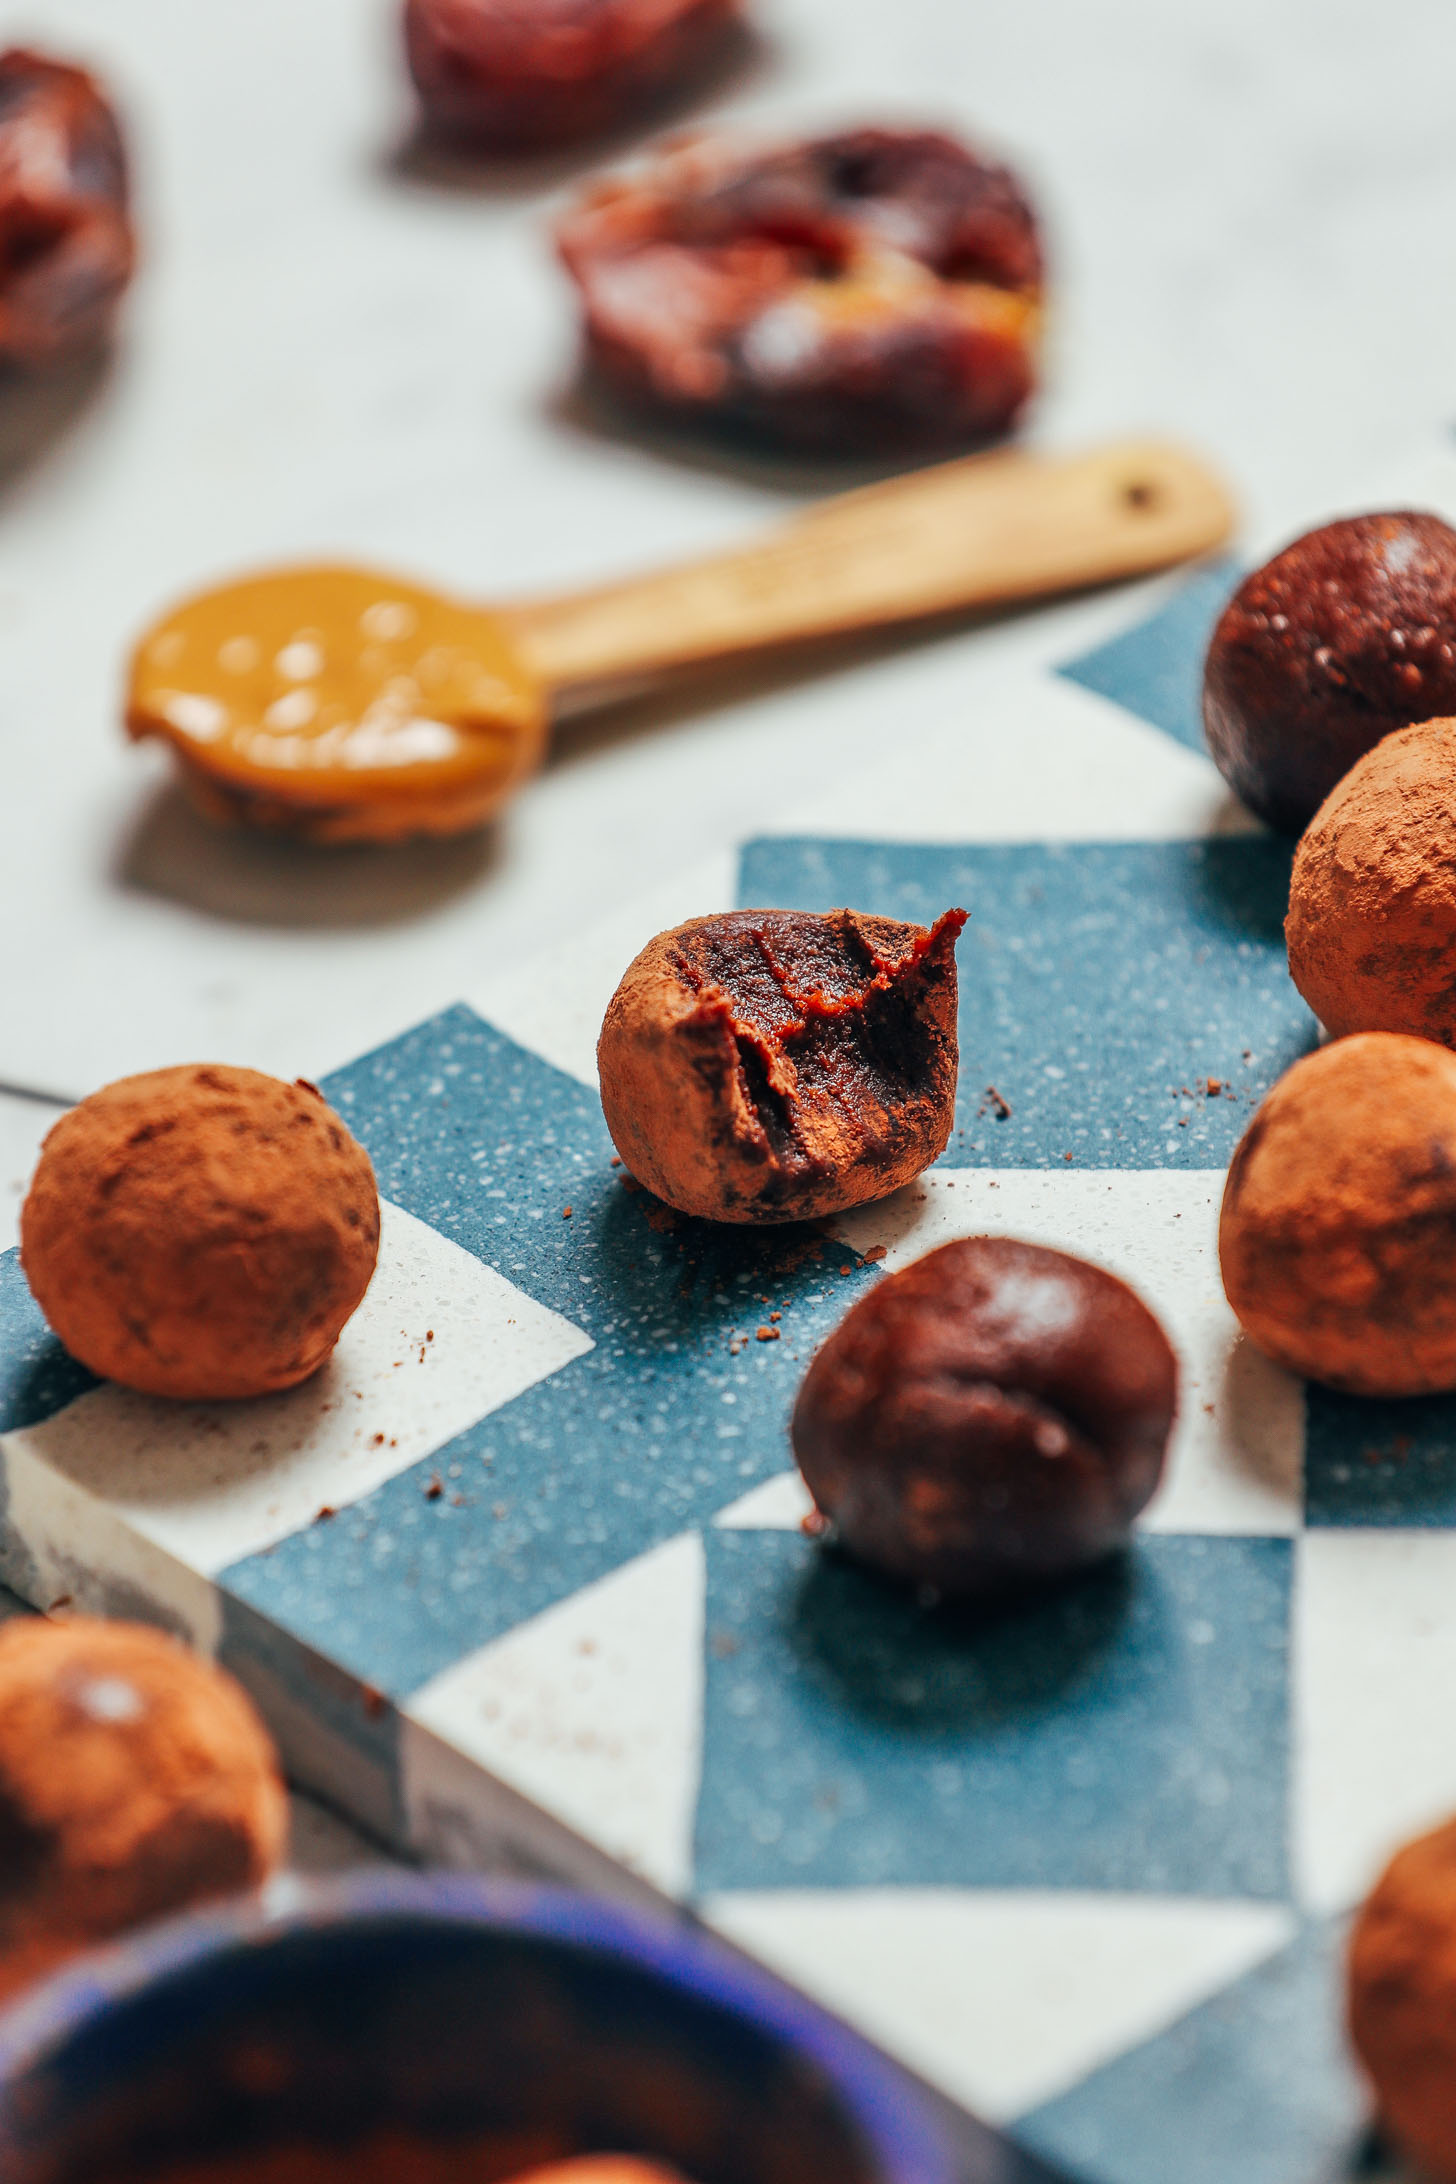 Date-sweetened Vegan Chocolate Truffles on a tile for a simple and delicious dessert